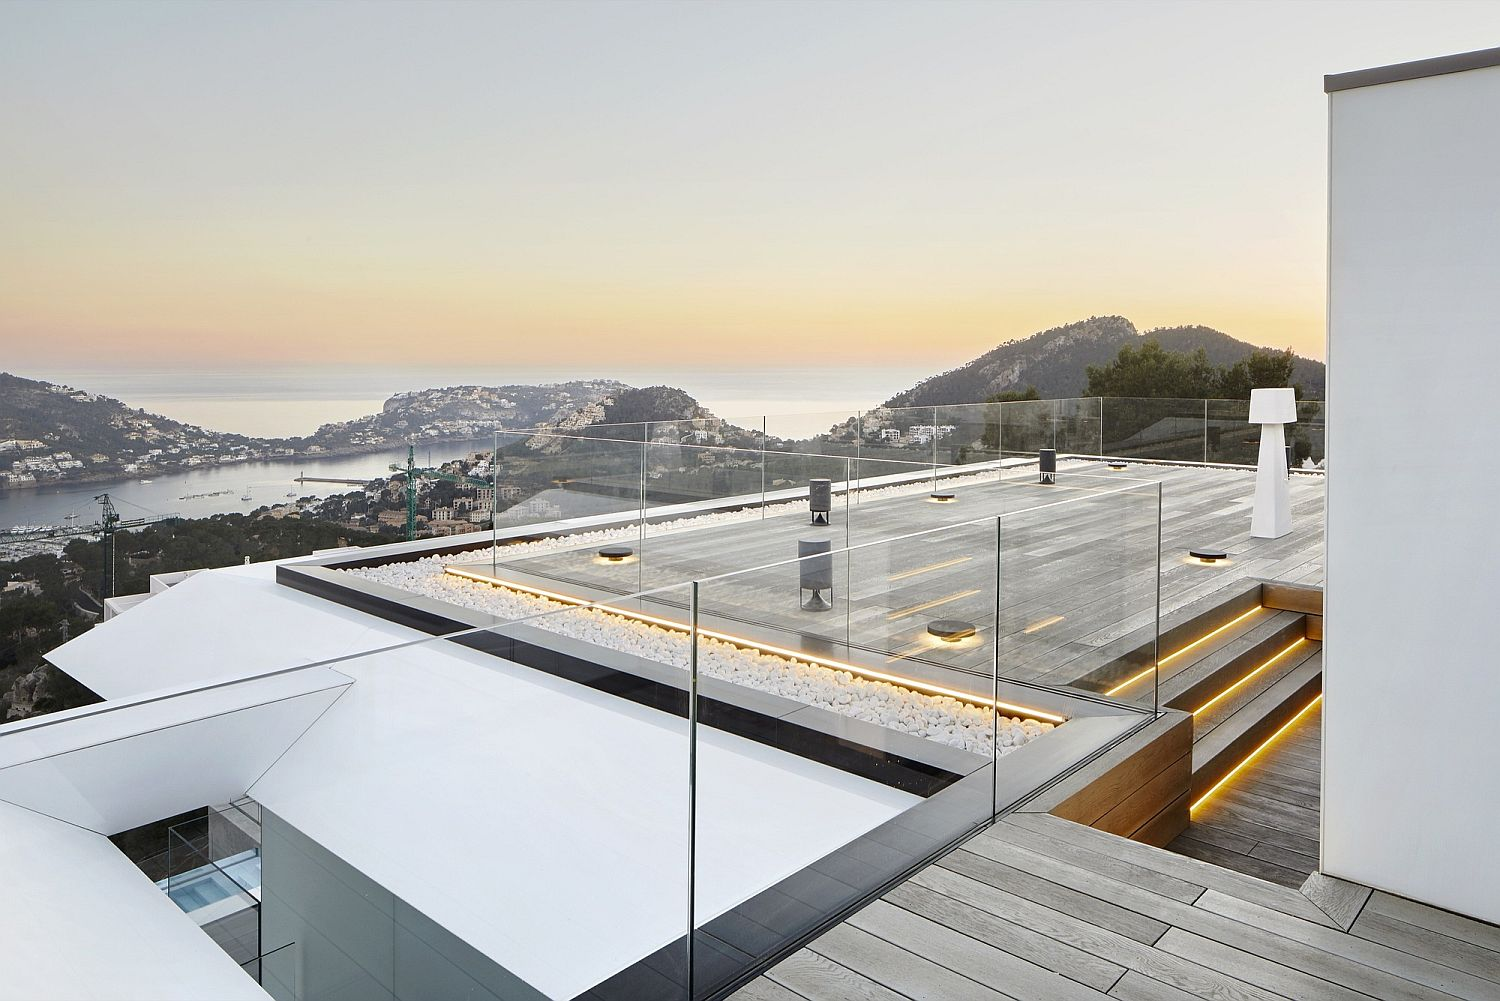 Stunning view of the sea and the city below from the expansive deck